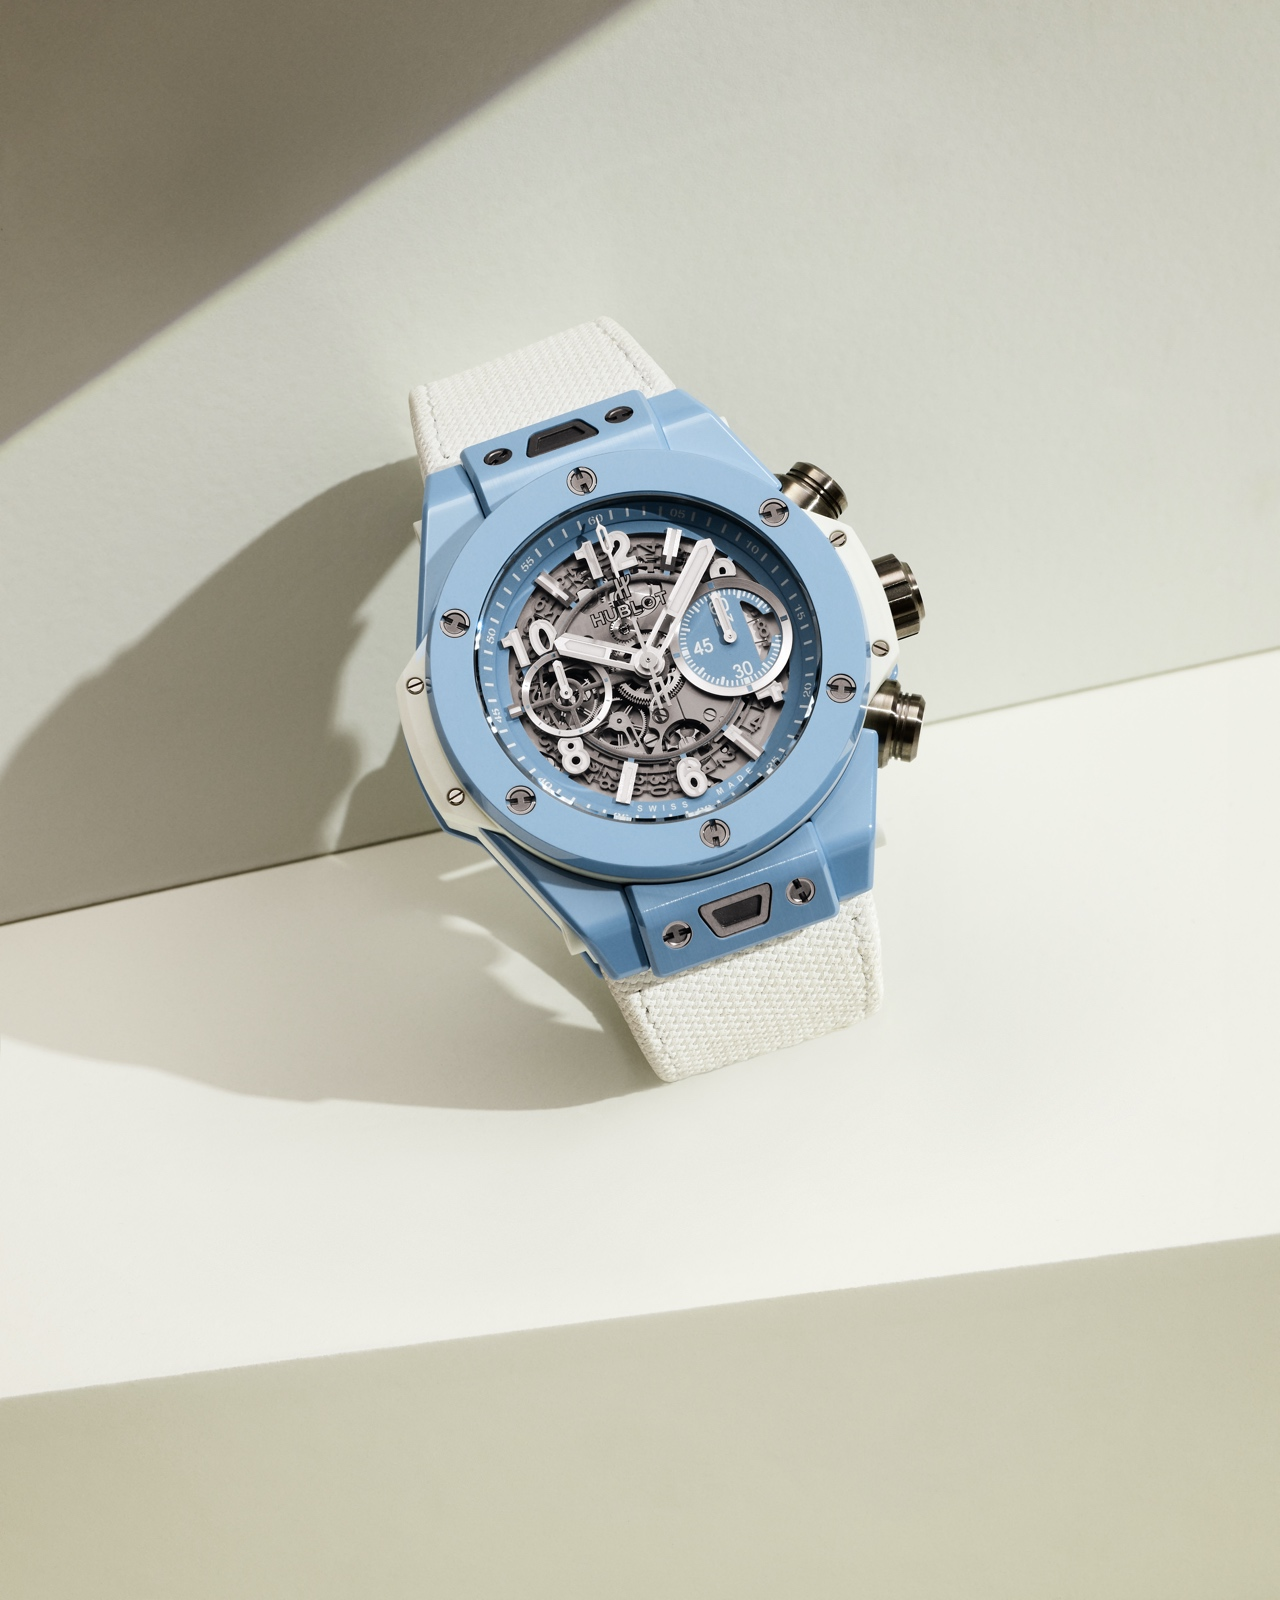 Hublot Big Bang Unico Sky Blue - lifestyle 2 v